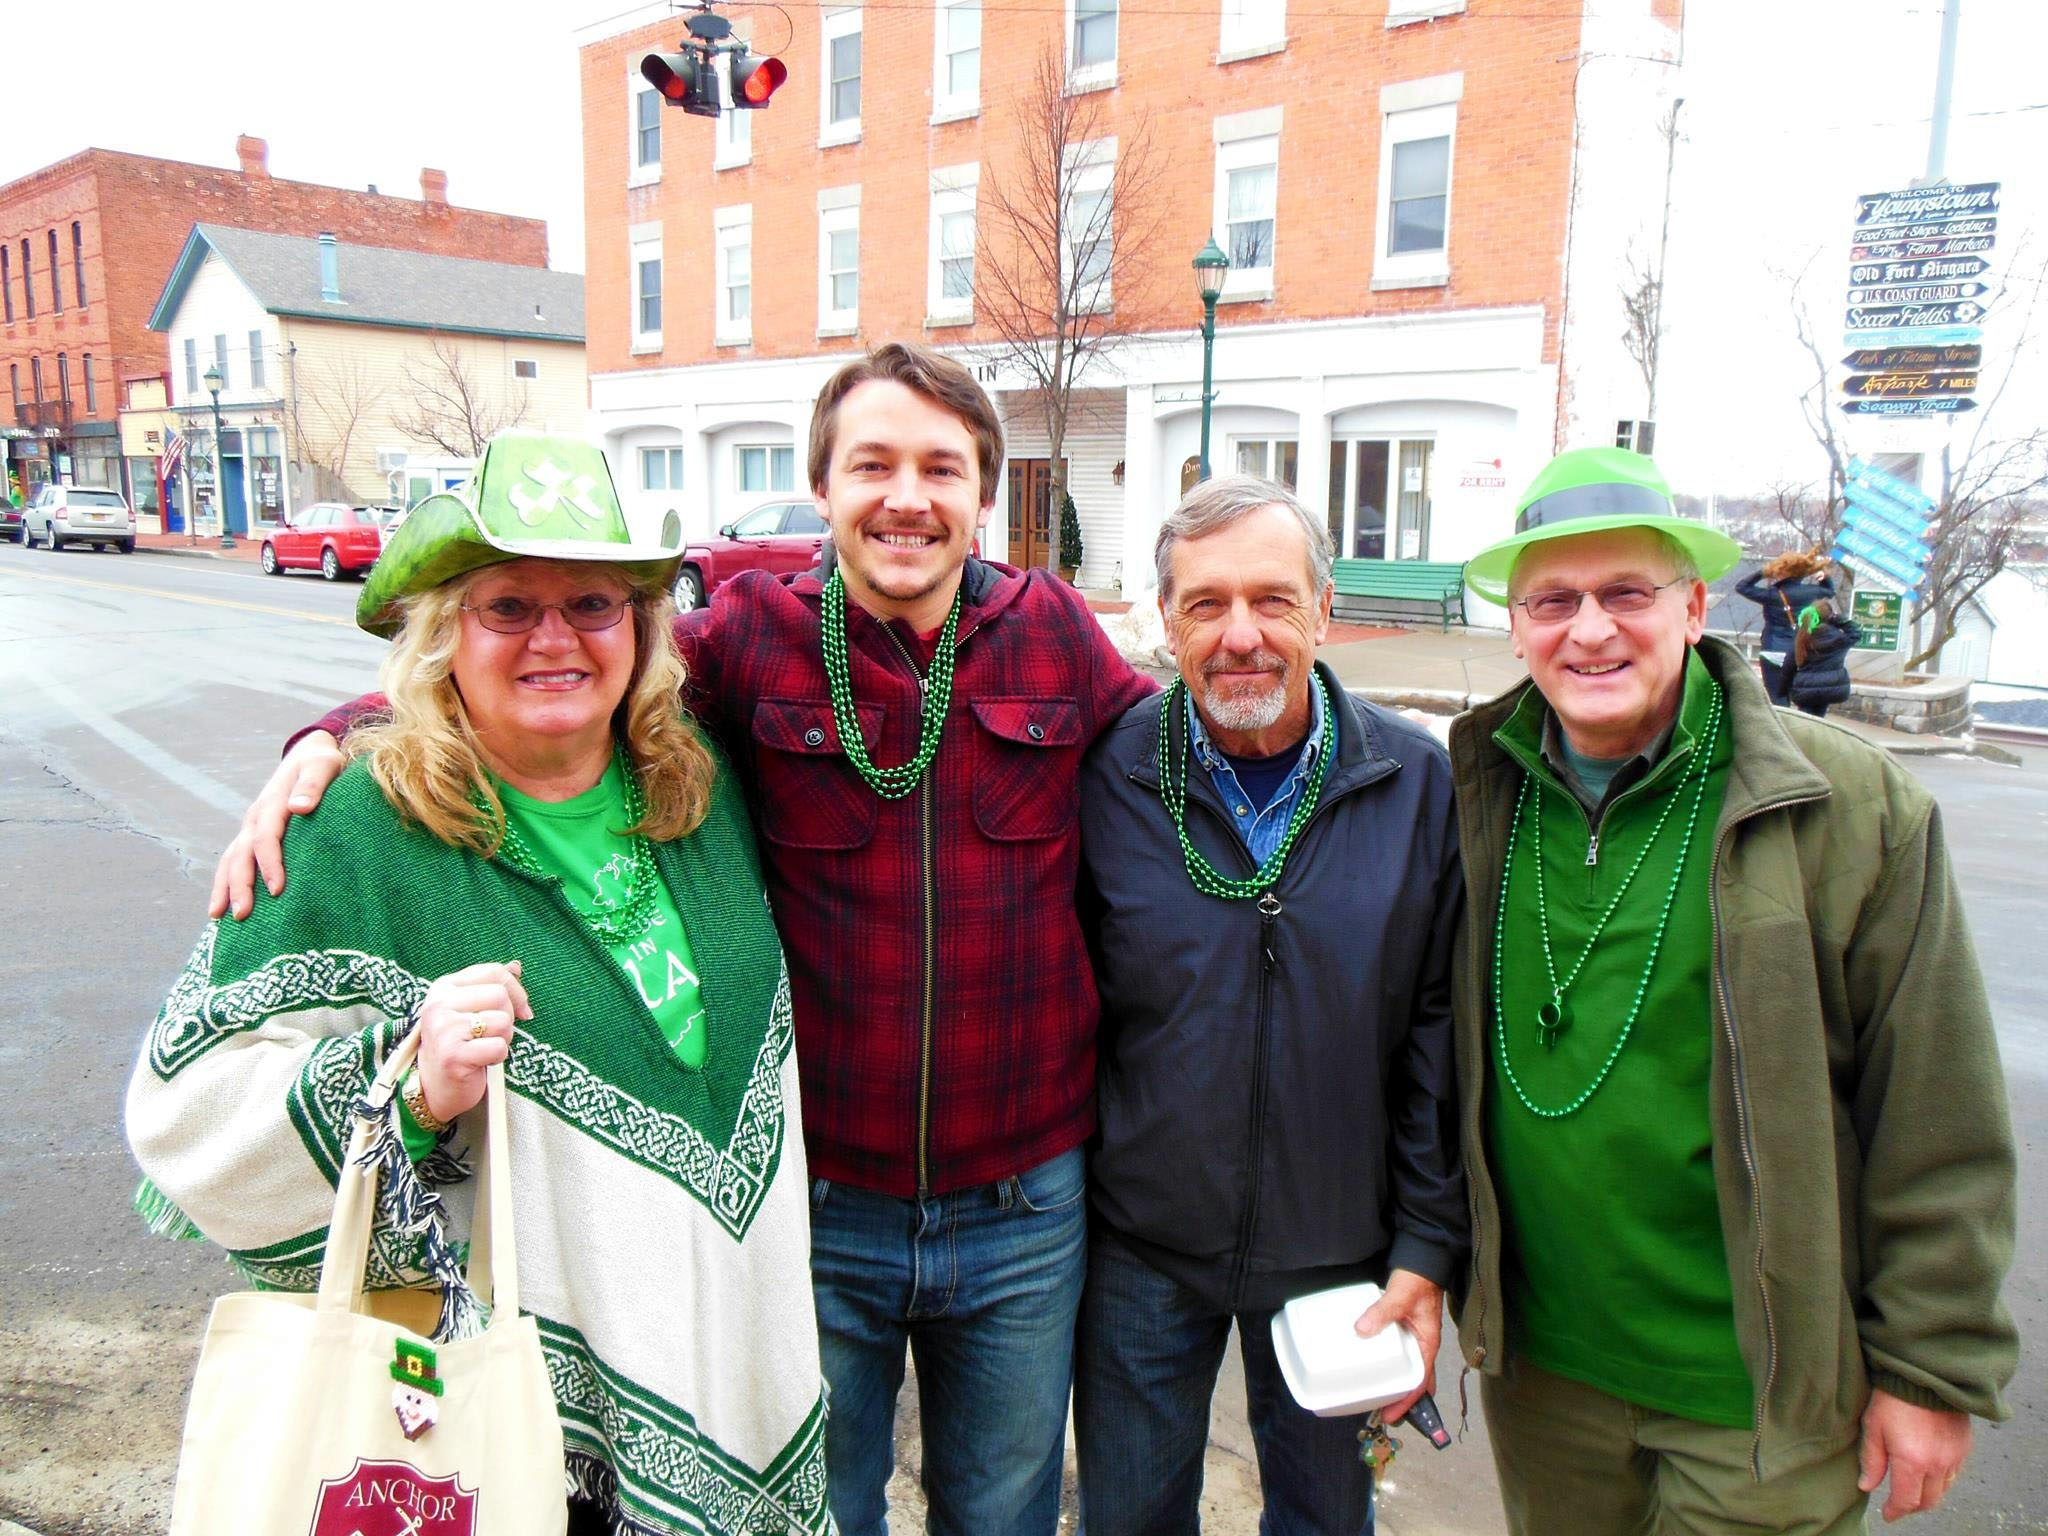 Revelers bedecked in green attend Youngstown's O'Riordan St. Patrick's Day Parade in 2015.